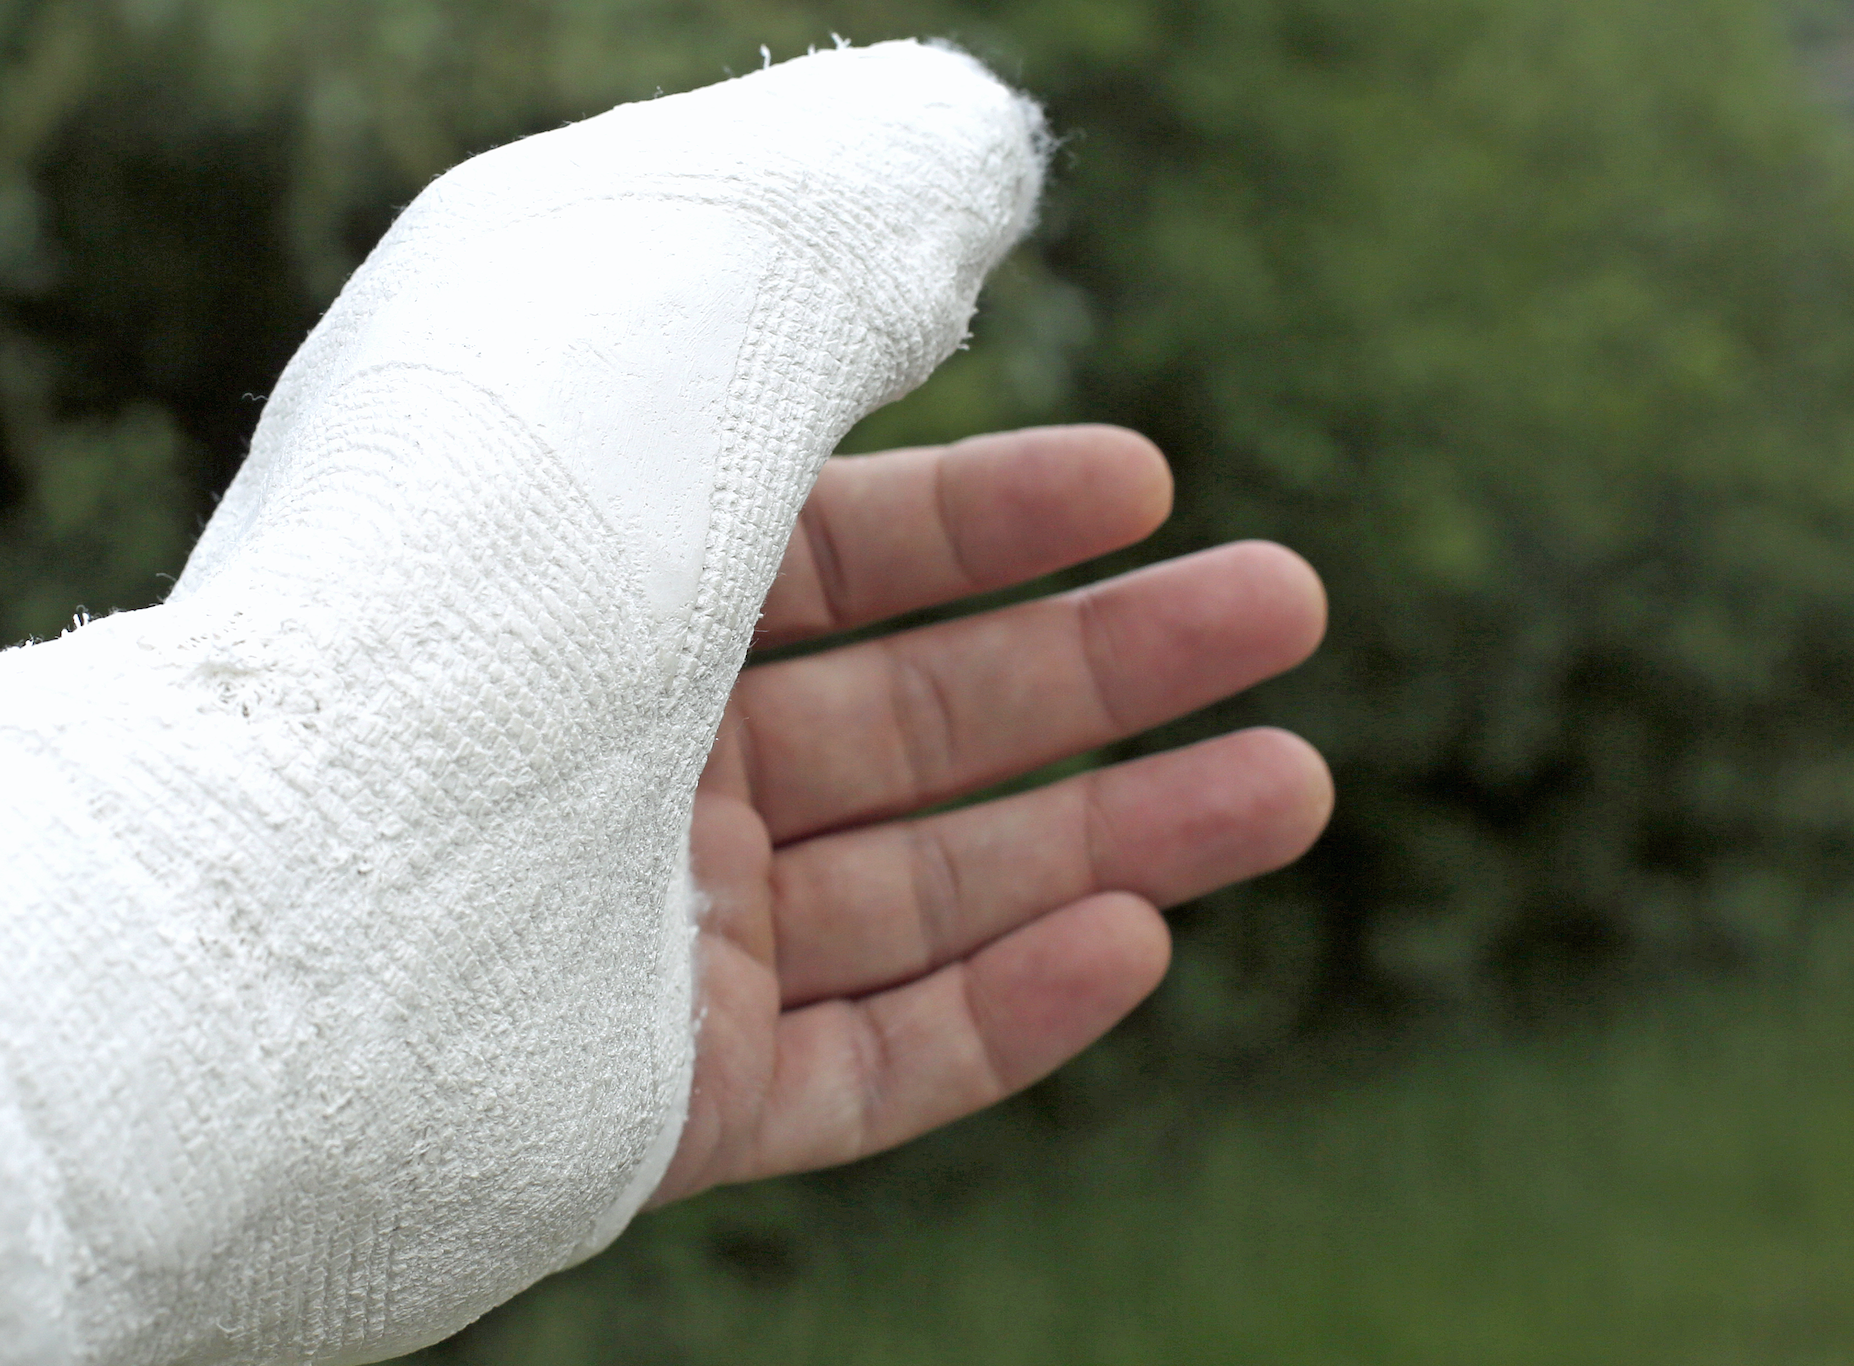 a hand in a cast